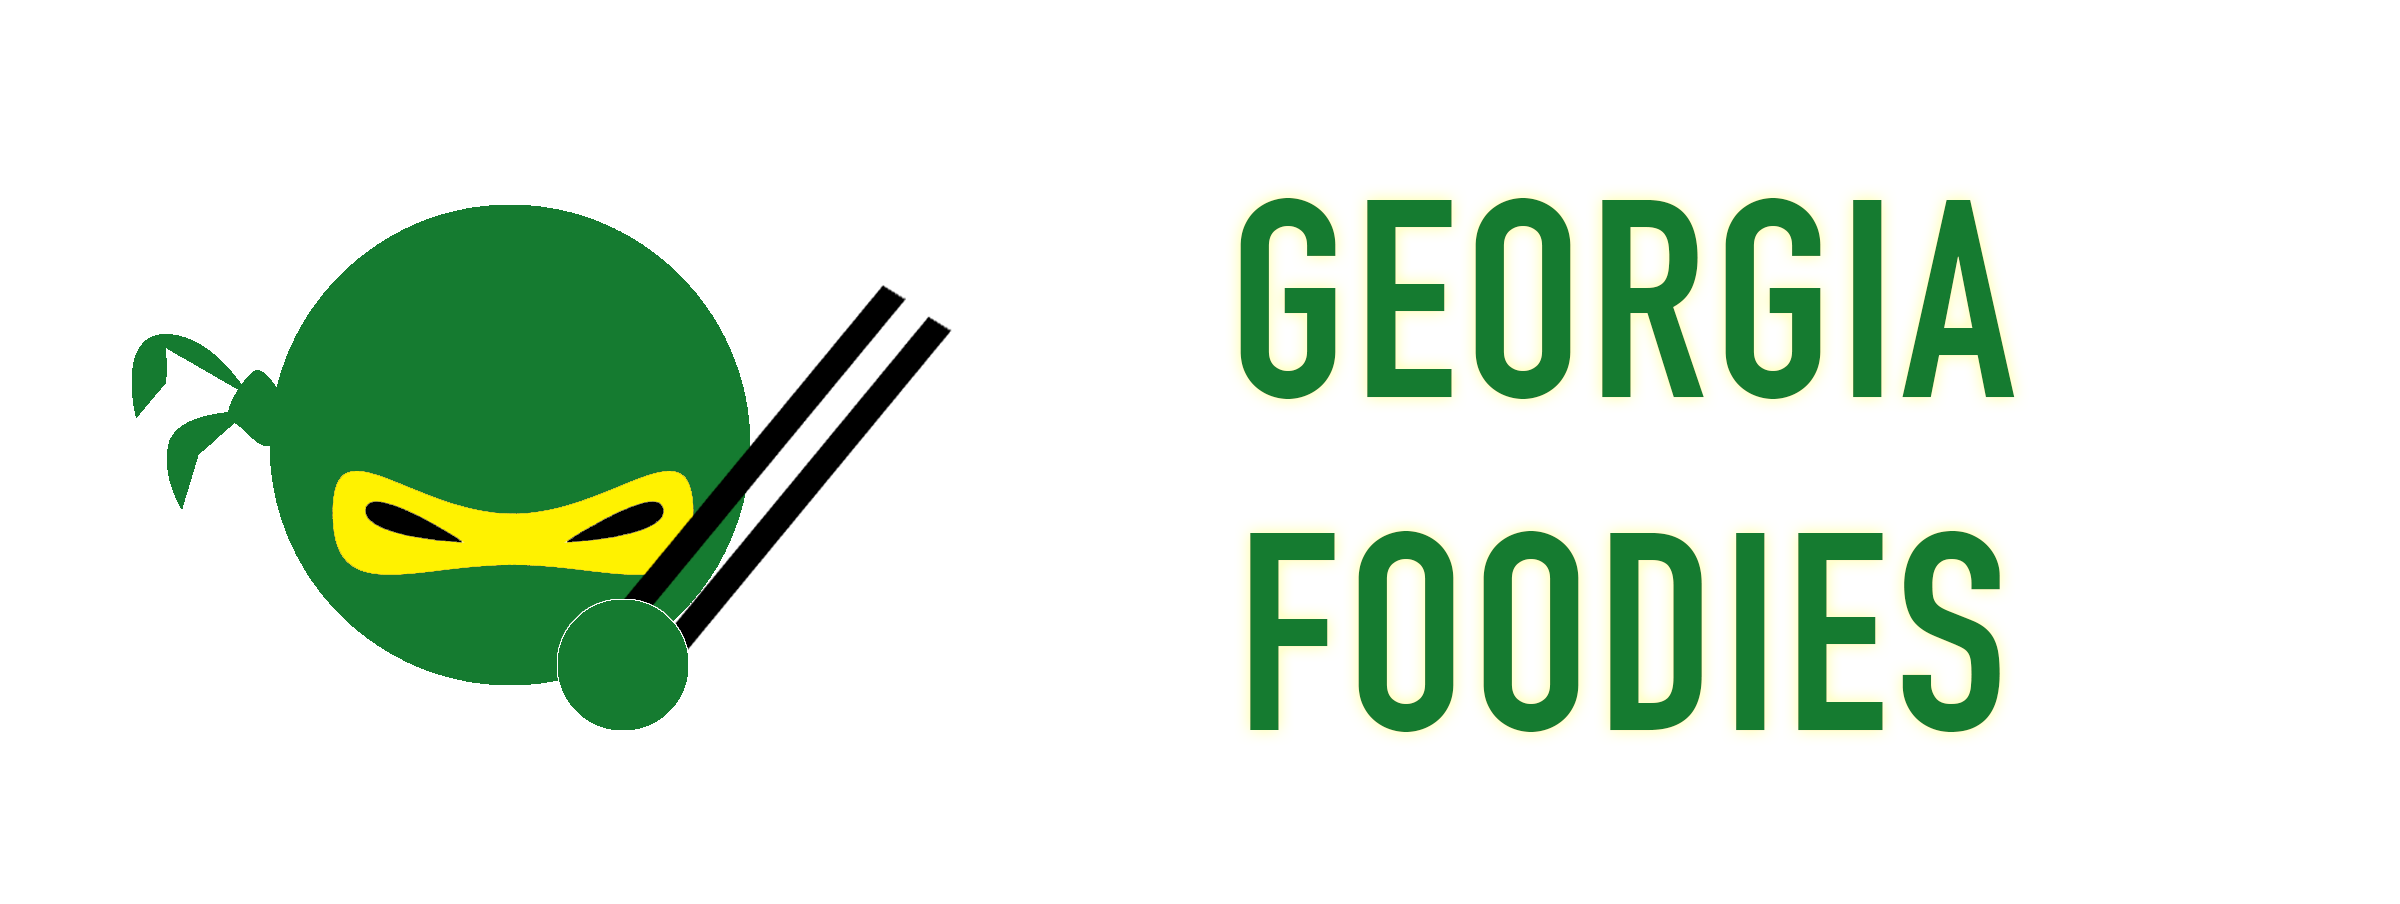 Georgia Foodies